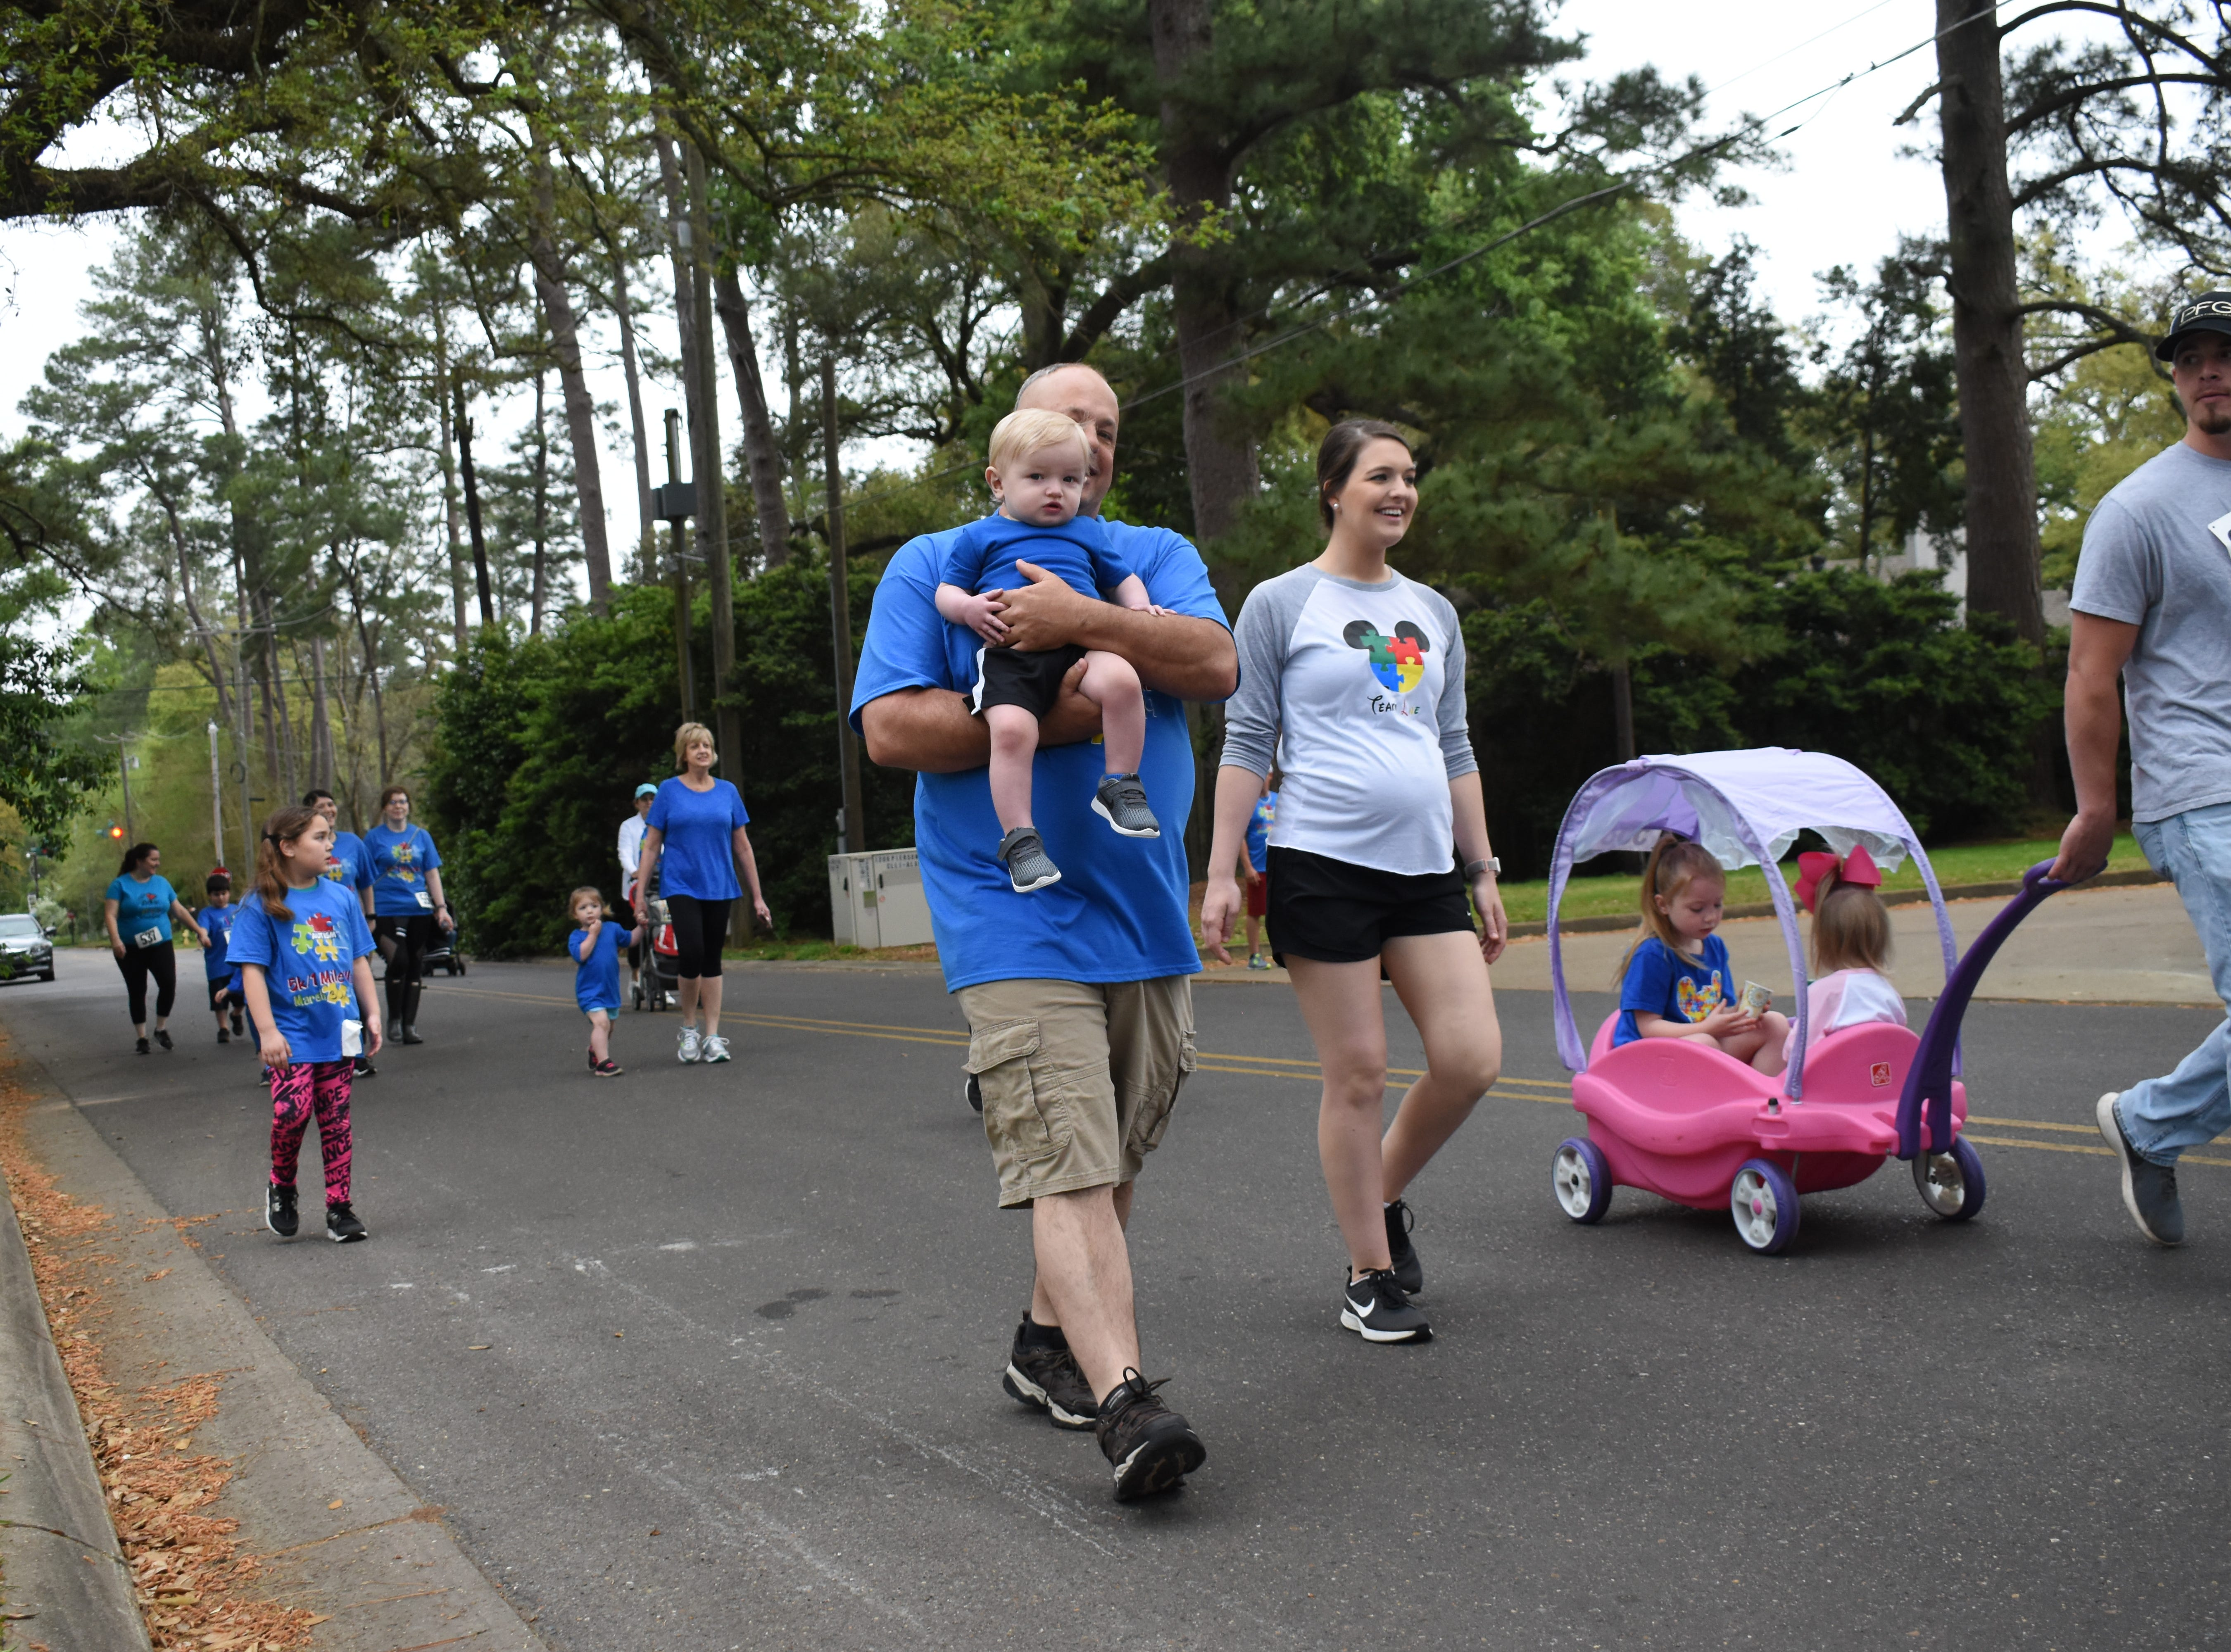 The Cenla Autism Awareness annual 5k and 1-mile walk was held Saturday, March 30, 2019 in Alexandria's Garden District. About 75 people participated in the event that started in the parking lot near First United Methodist Church Alexandria. All proceeds  towards Buddy Camp Ministries which works with autistic children.